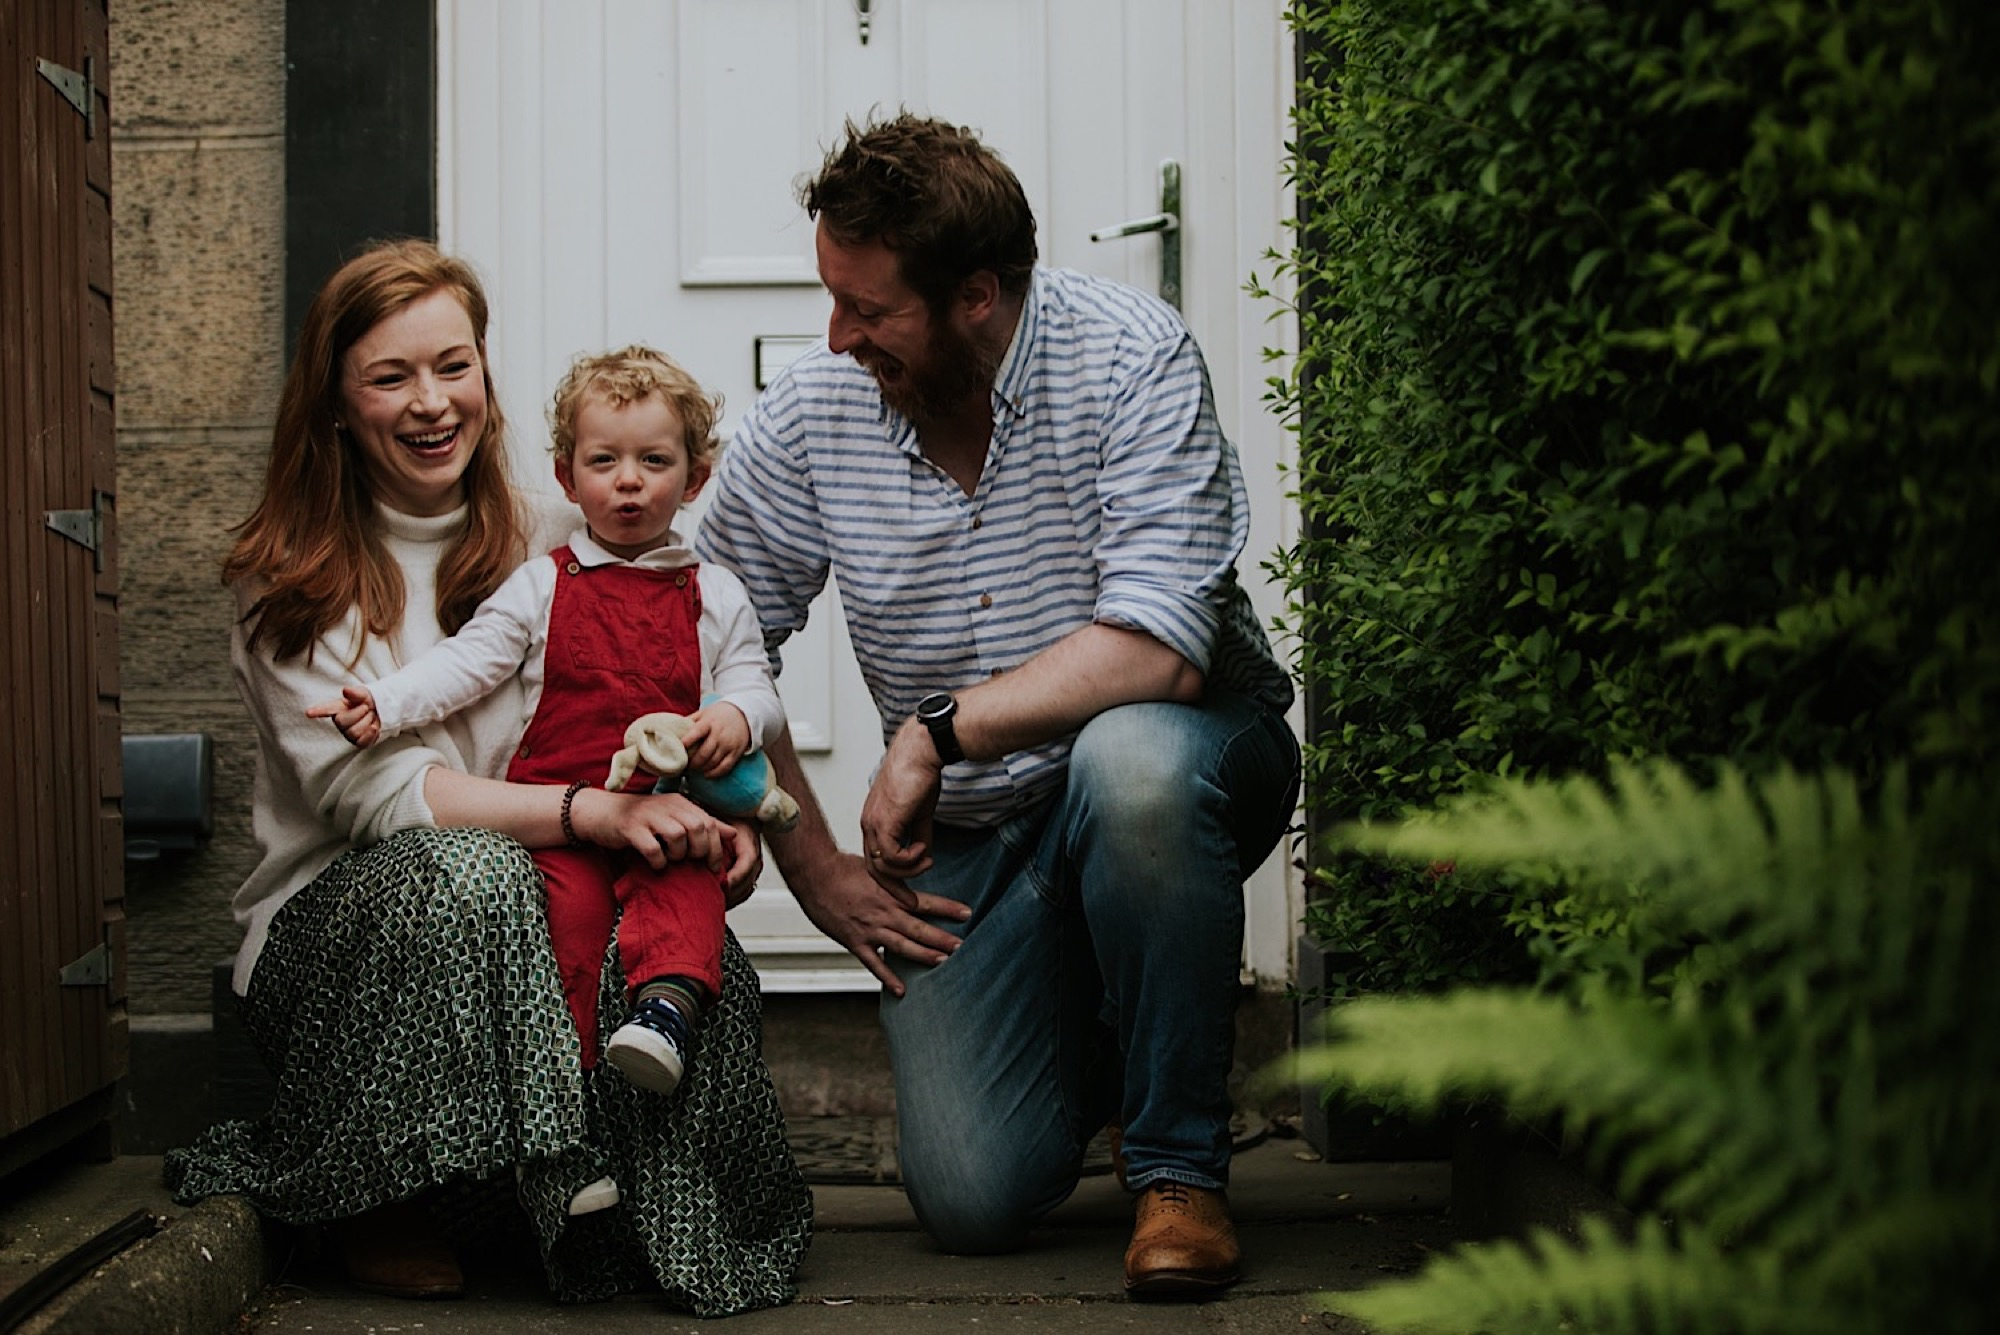 edinburgh lockdown doorstep family sessions photos